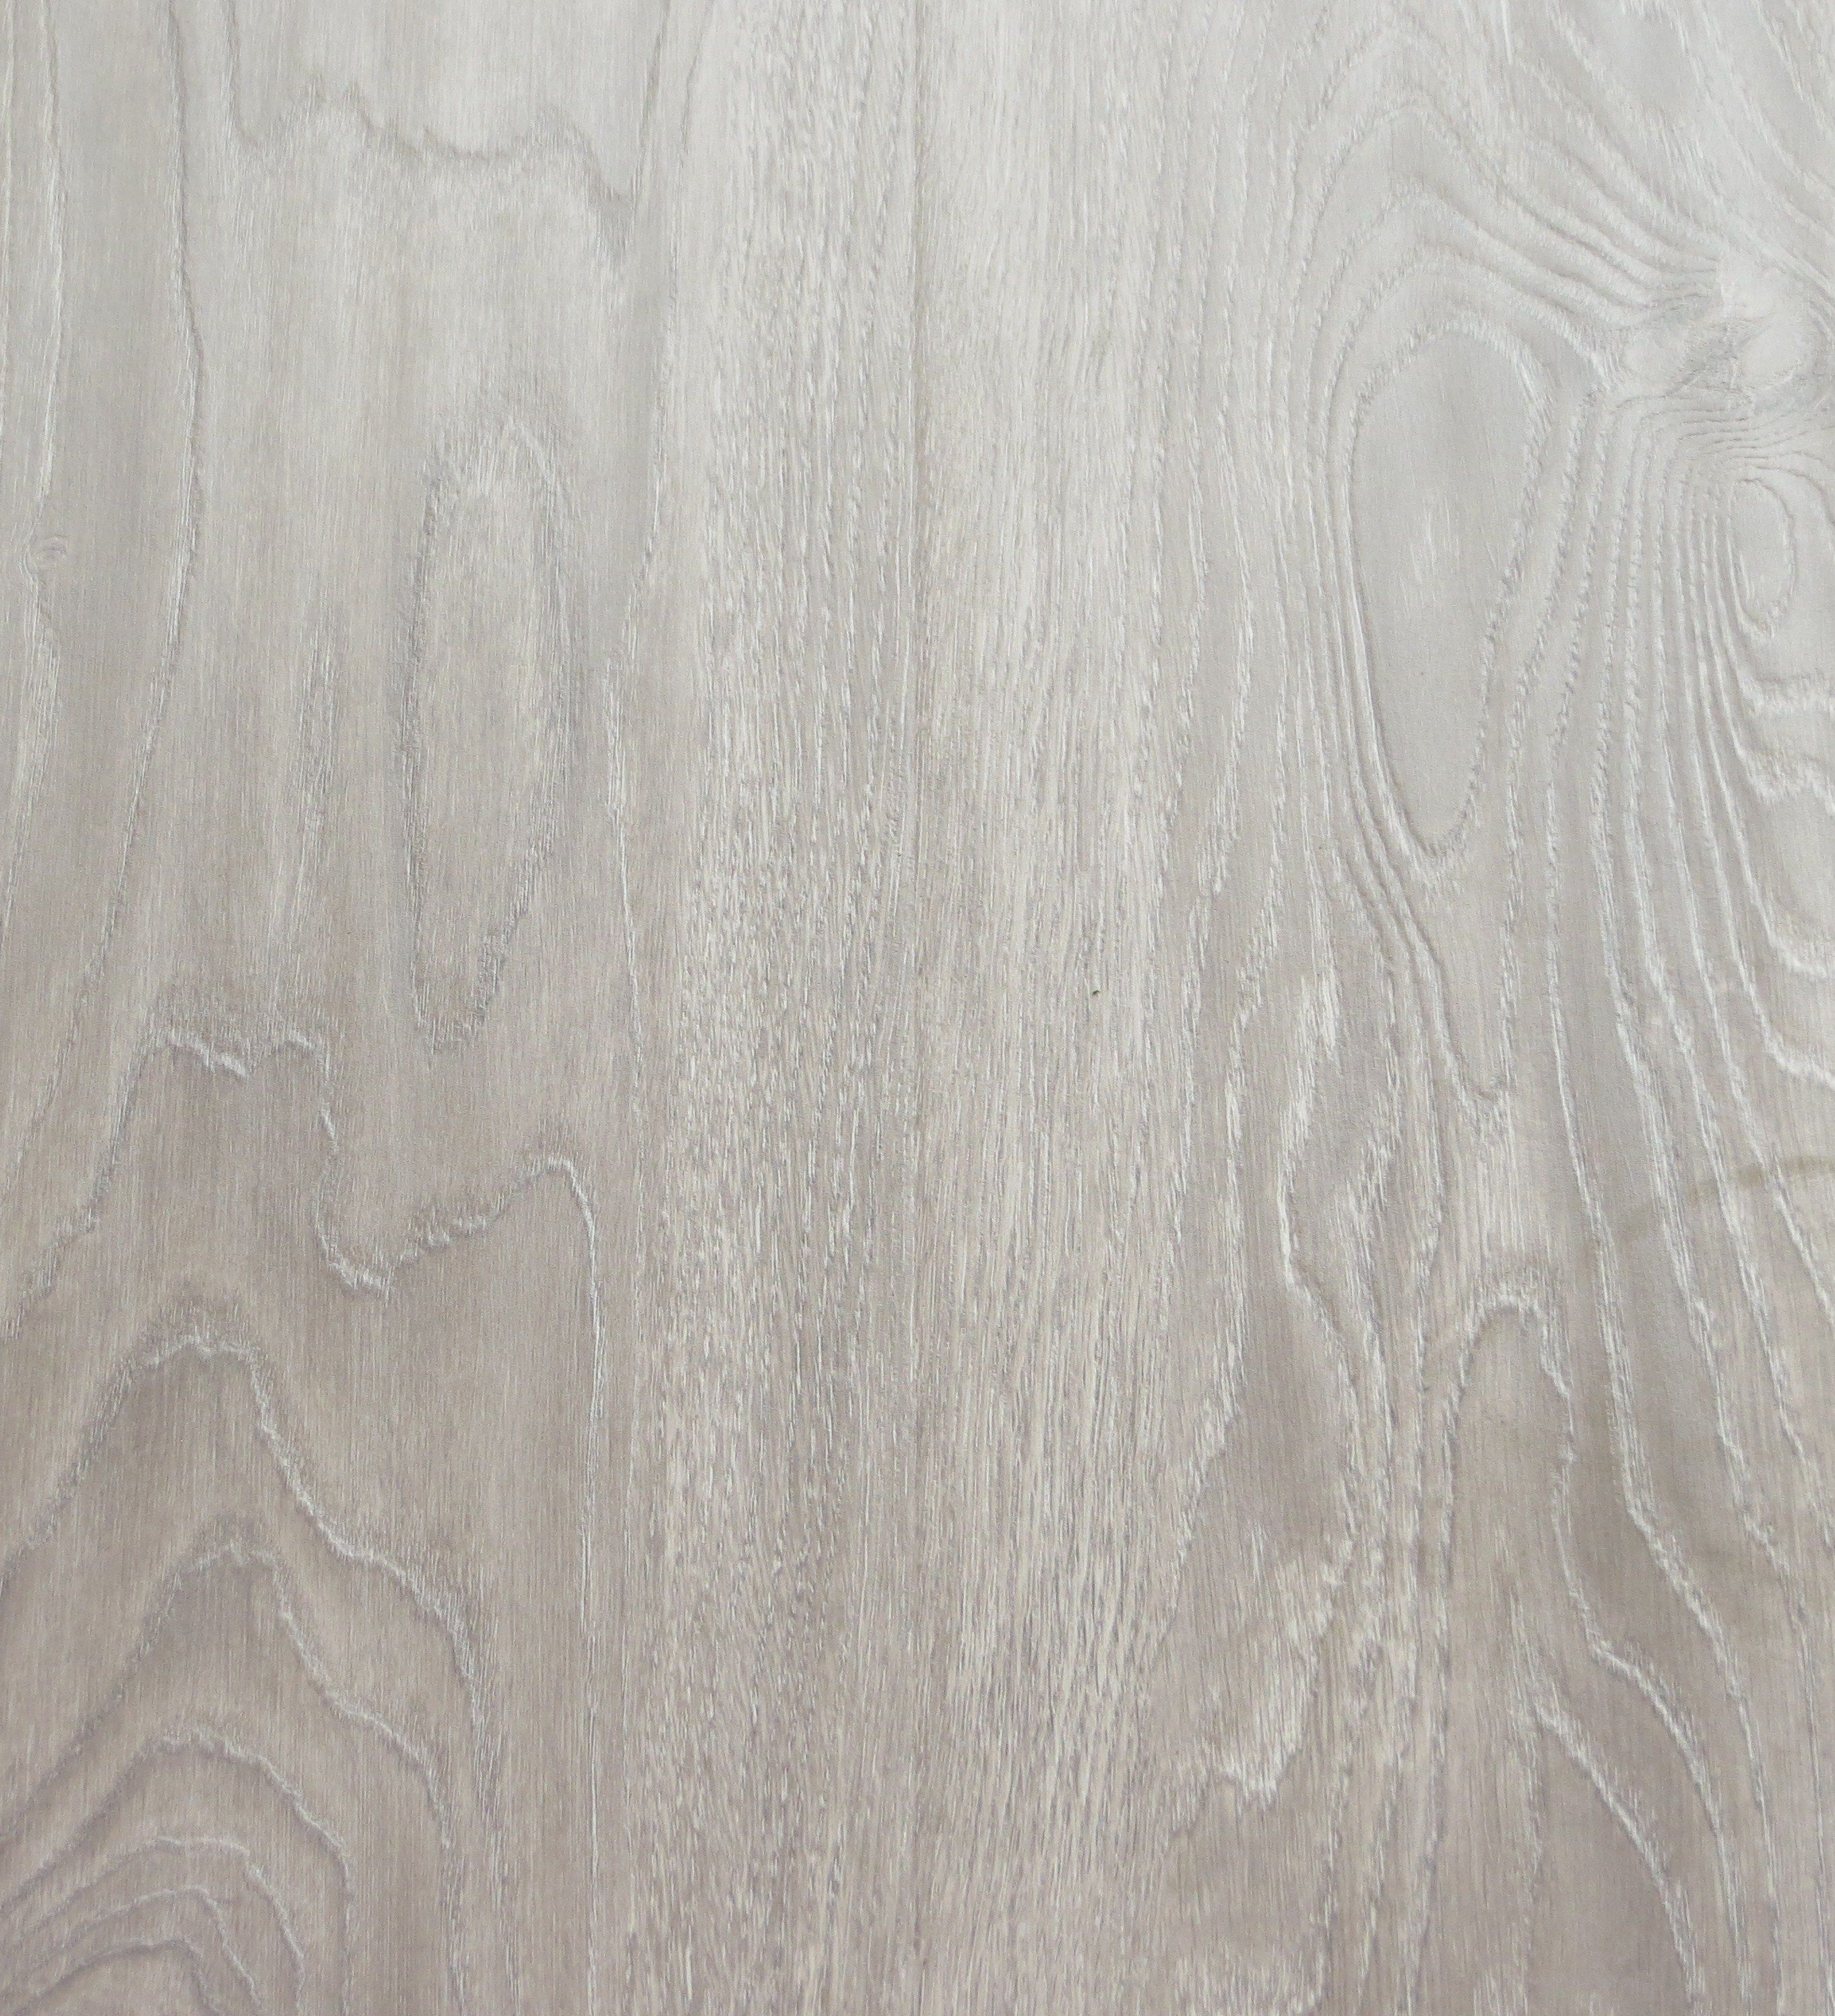 White Wood Laminate ~ Crystaline laminate by simplefloors the white washed look